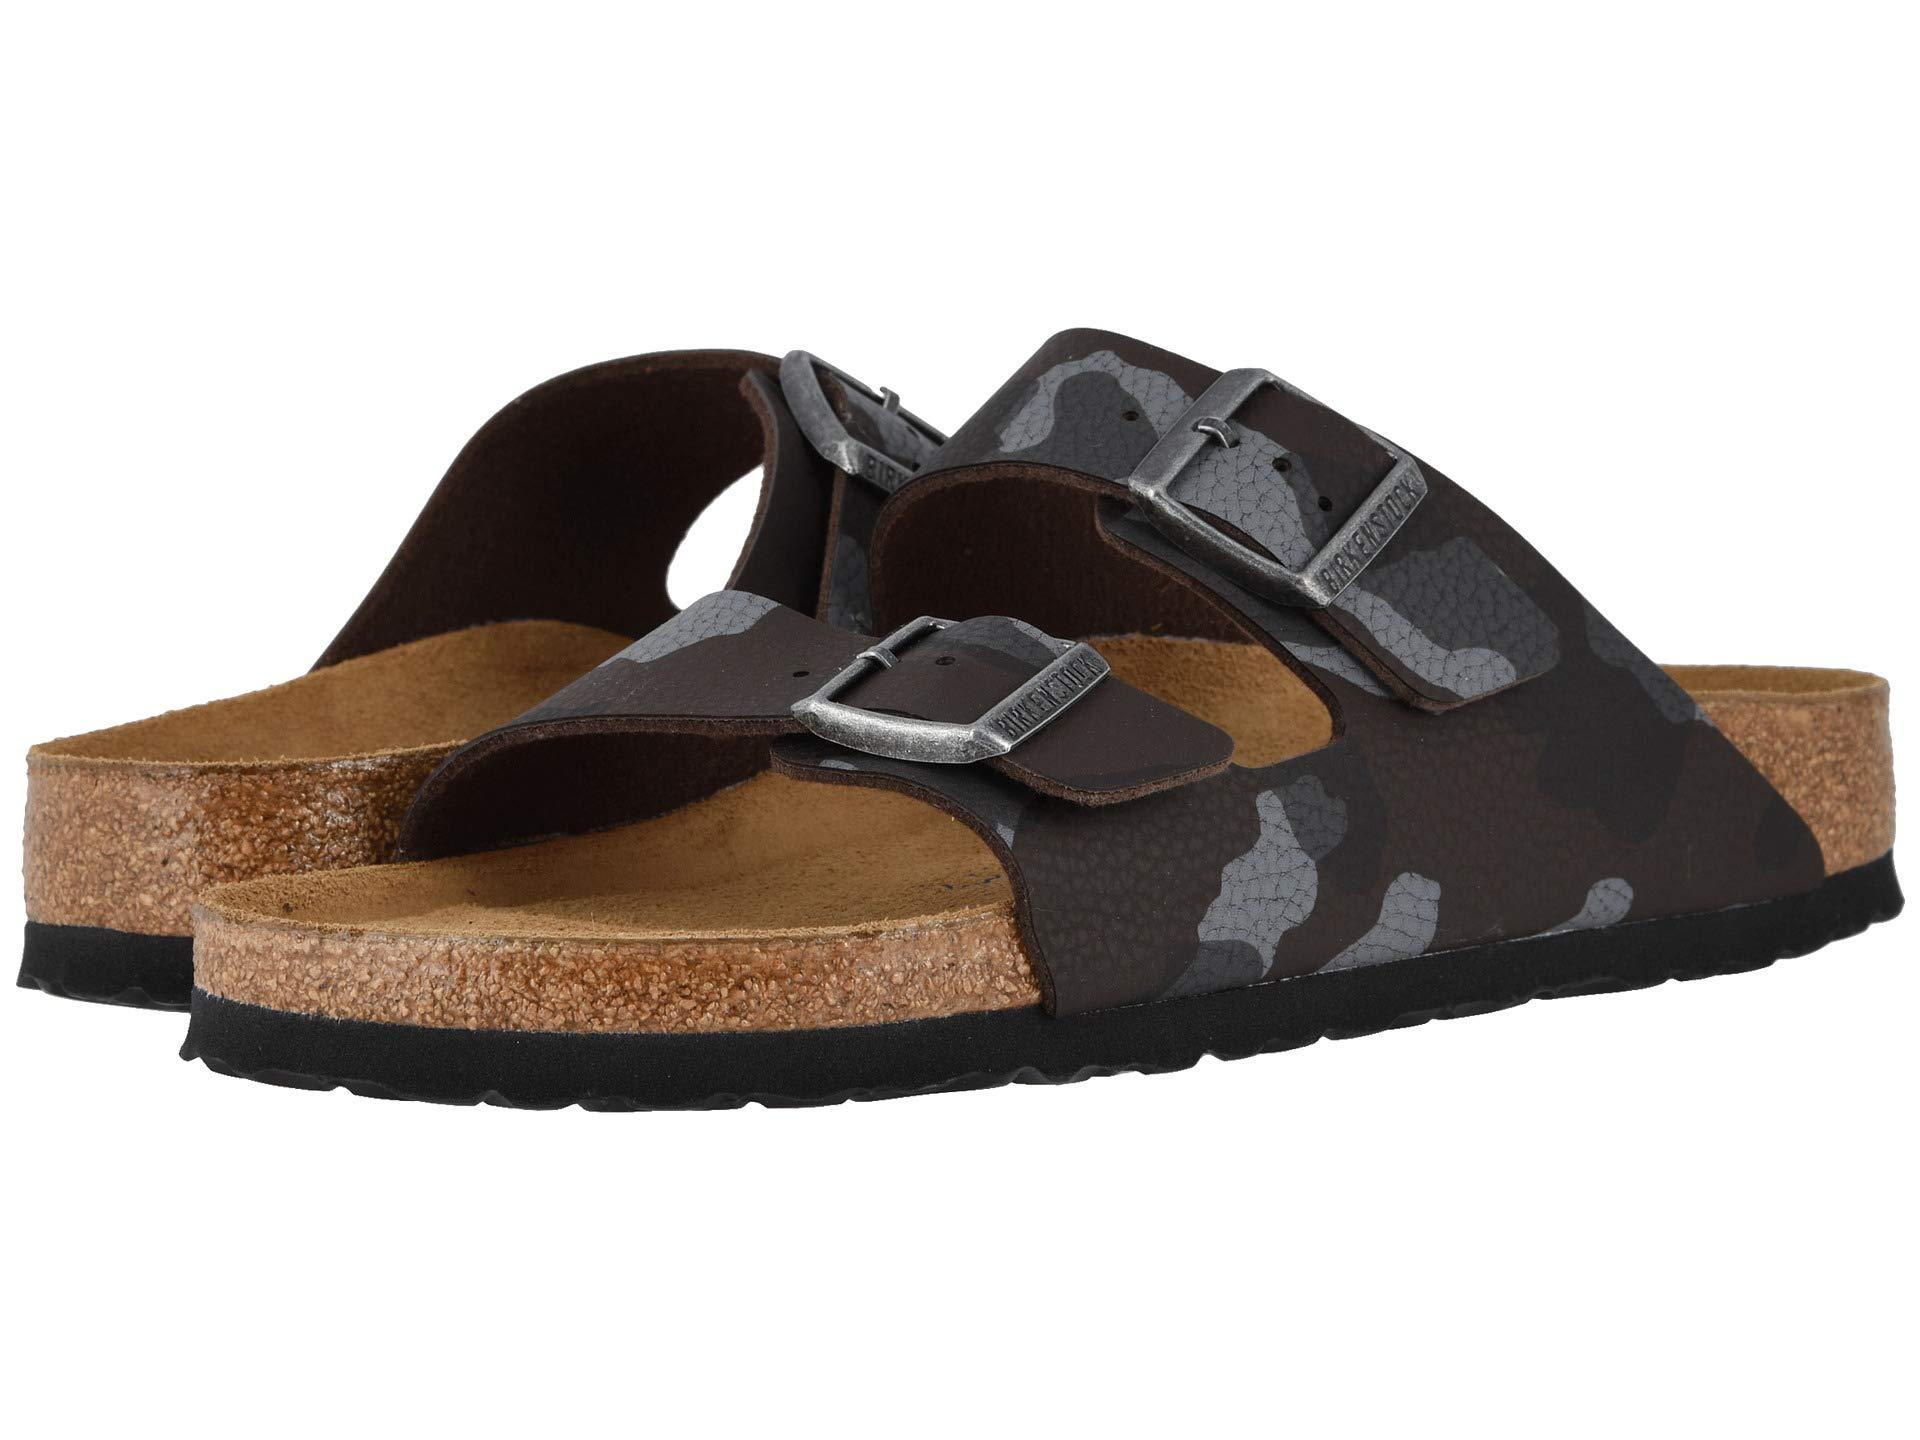 c160380b27c Lyst - Birkenstock Arizona Soft Footbed (desert Soil Camo Brown ...